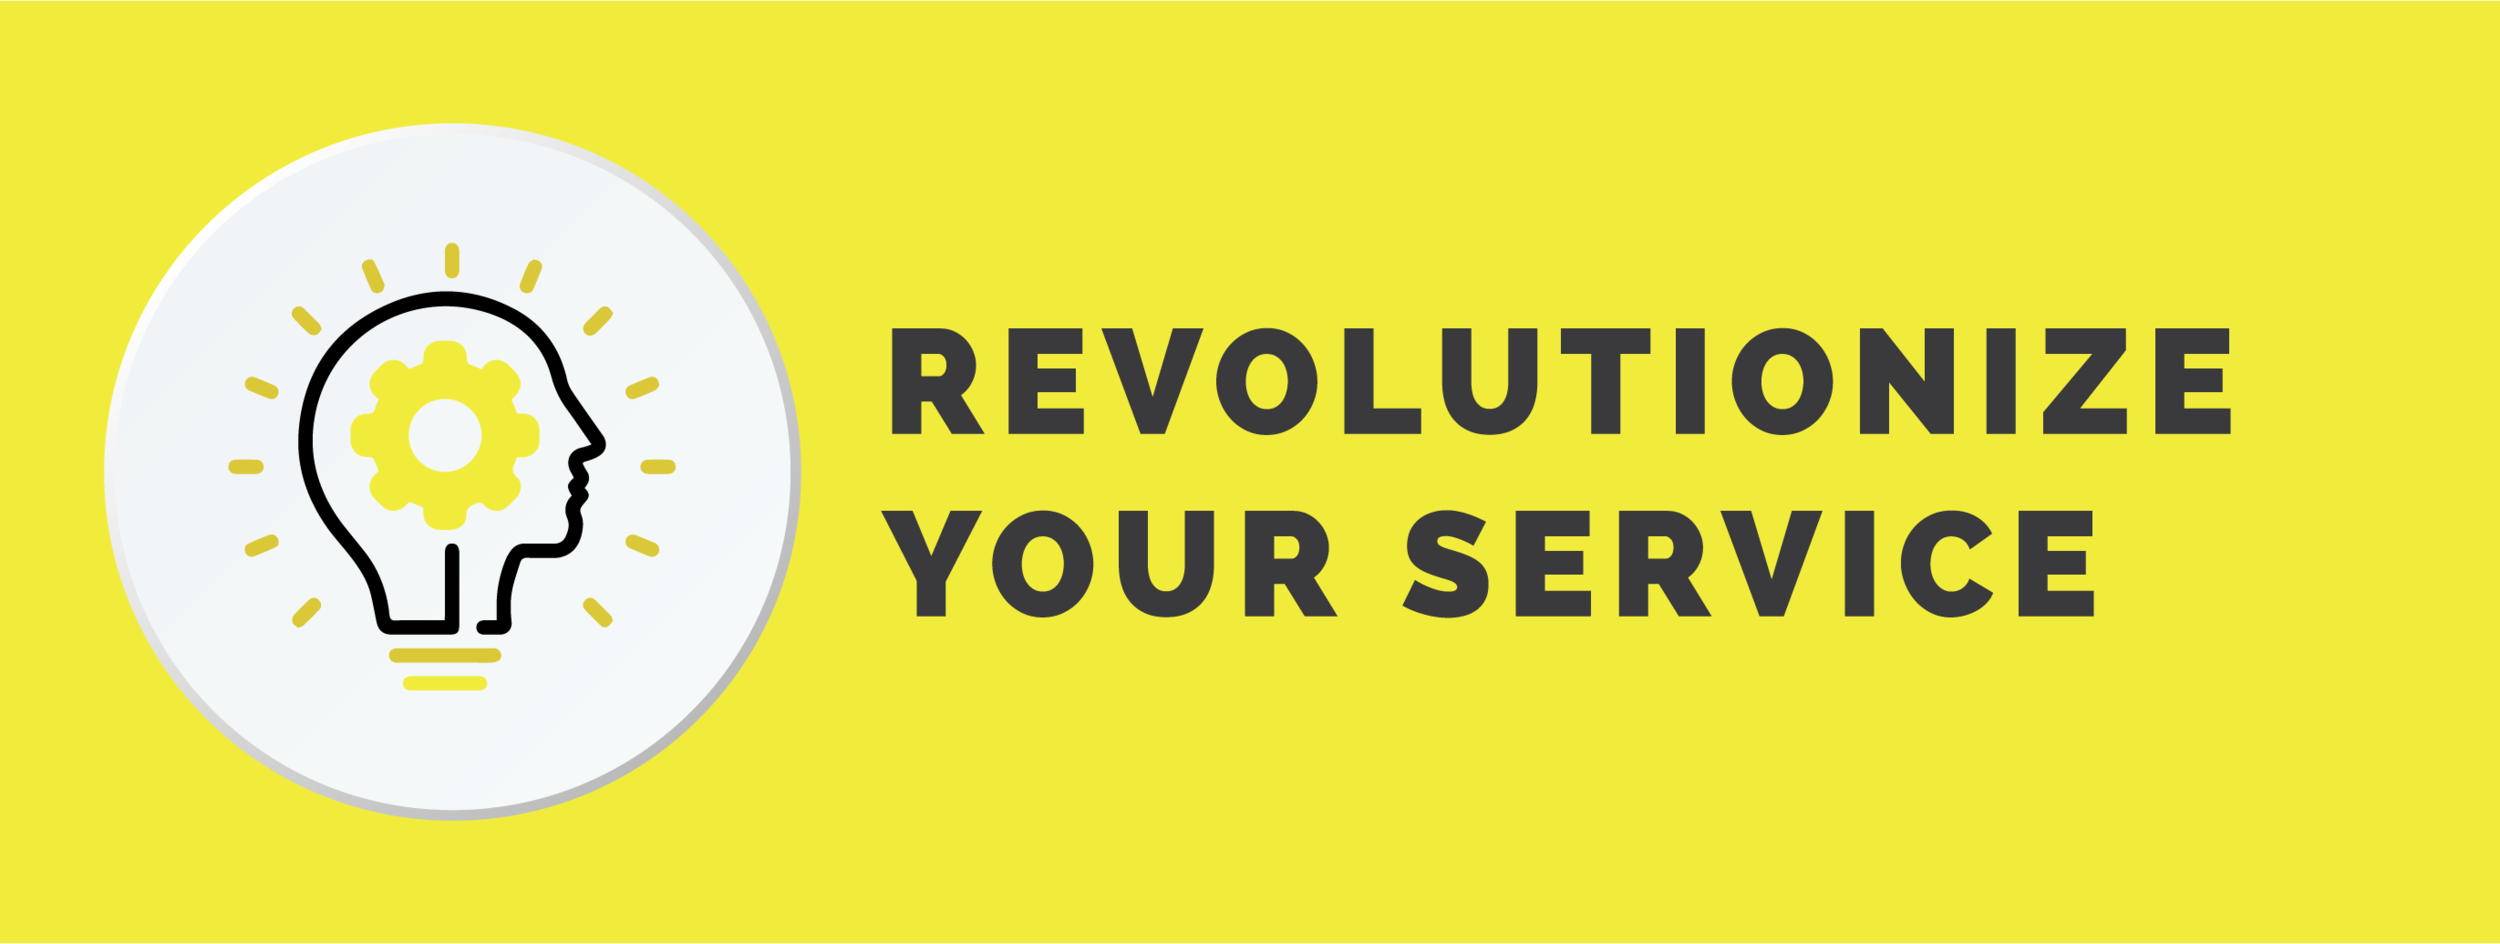 Revolutionize your service.